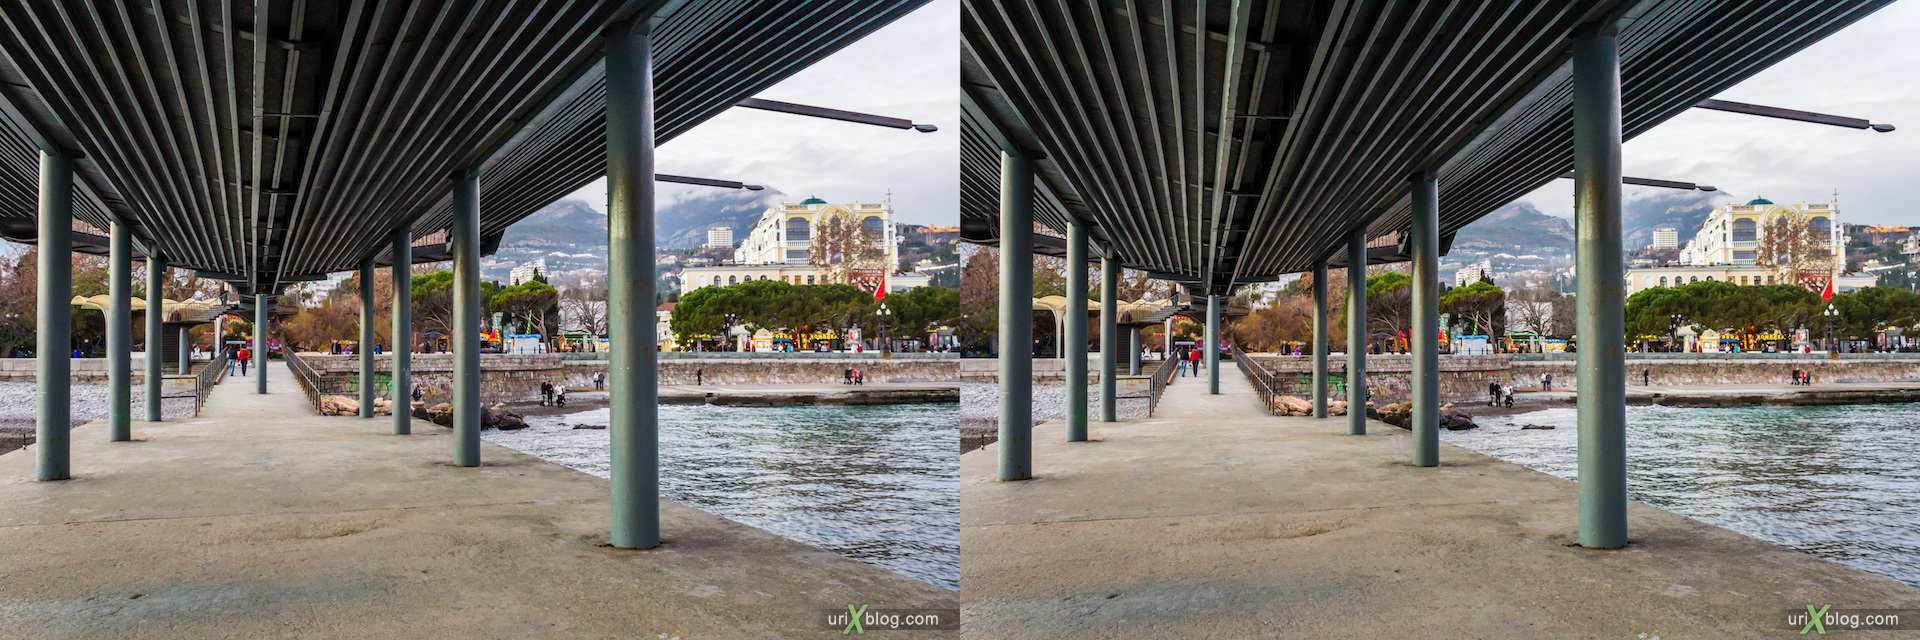 2012, Yalta, beach, sea, Imeni Lenina embankment, groyne, evening, coast city, Crimea, Ukraine, 3D, stereo pair, cross-eyed, crossview, cross view stereo pair, stereoscopic